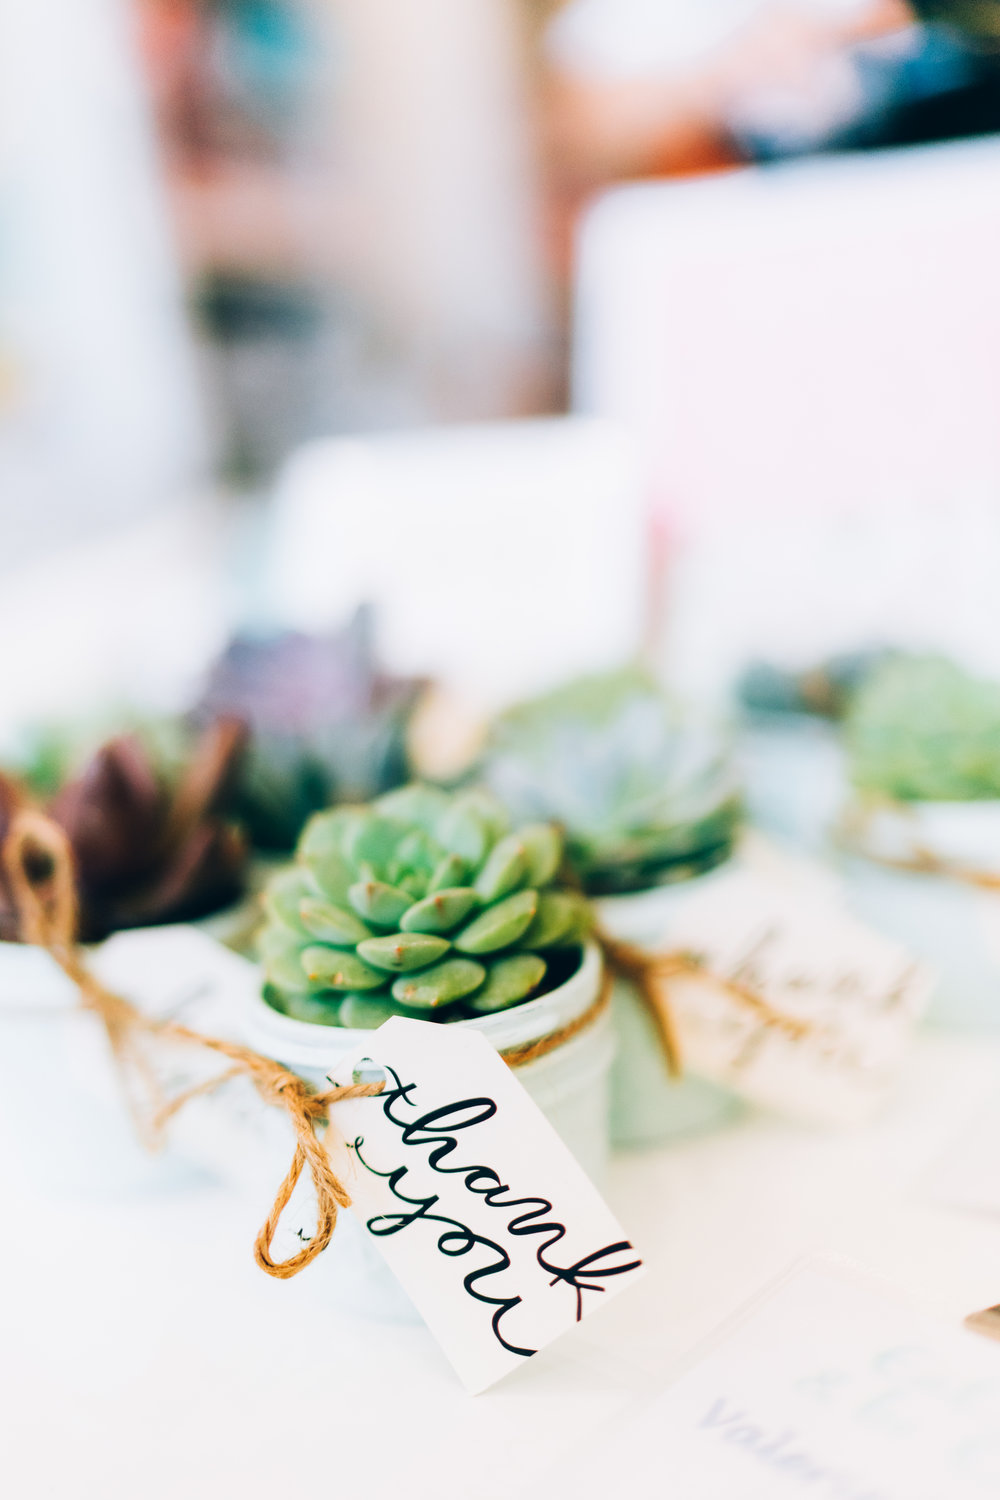 Succulent Gift Ideas - Thank you gifts for clients